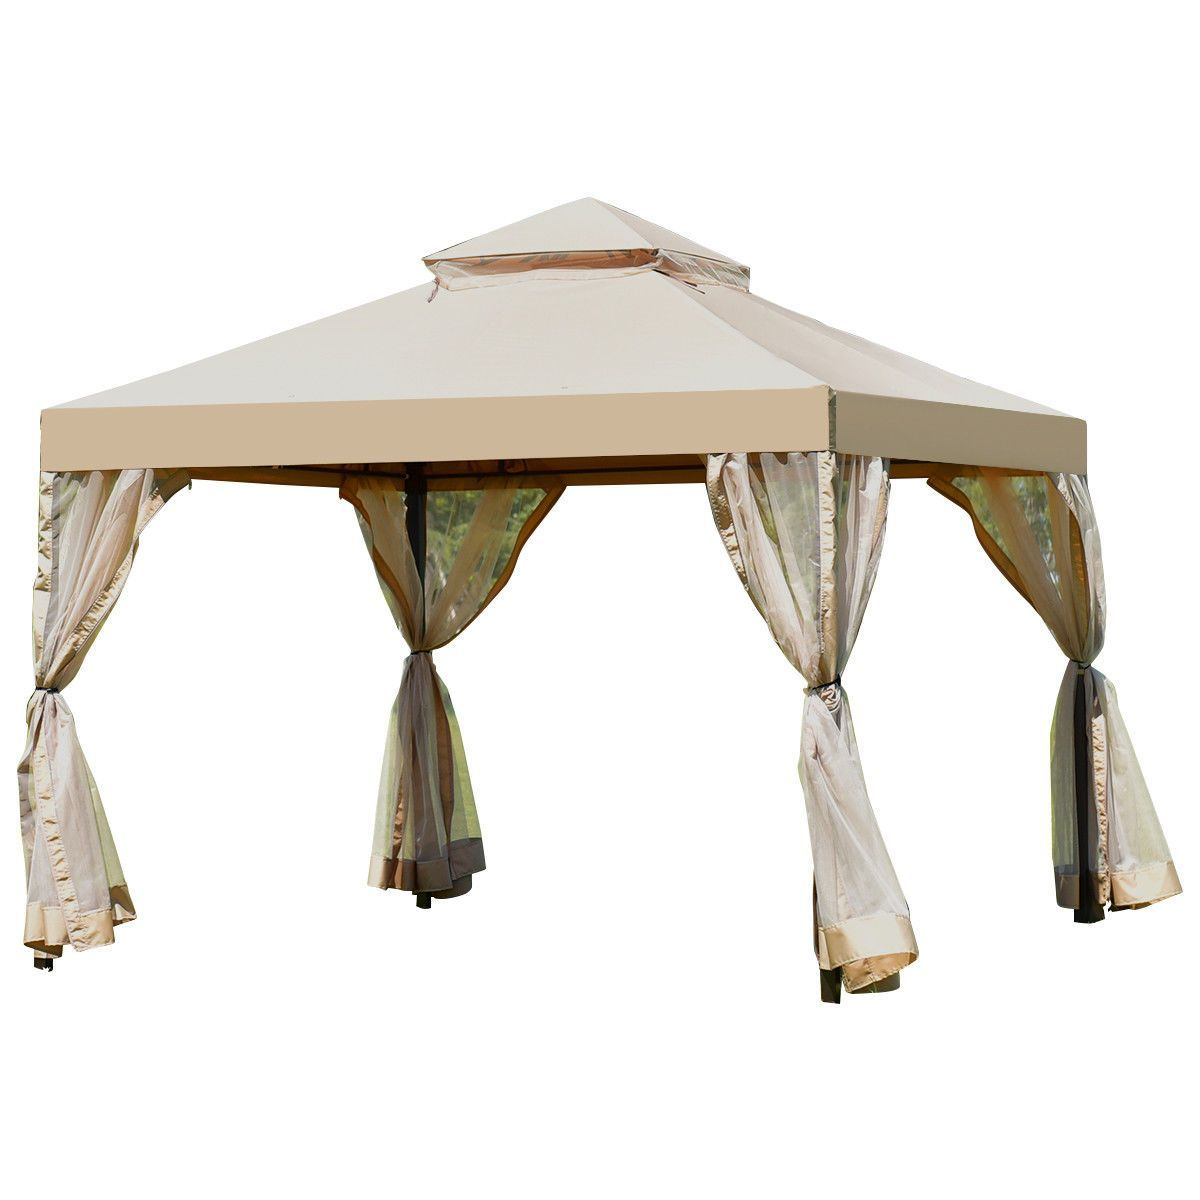 Outdoor 2 Tier 10 X 10 Shelter Awning Gazebo Canopy In 2020 Gazebo Canopy Steel Gazebo Gazebo